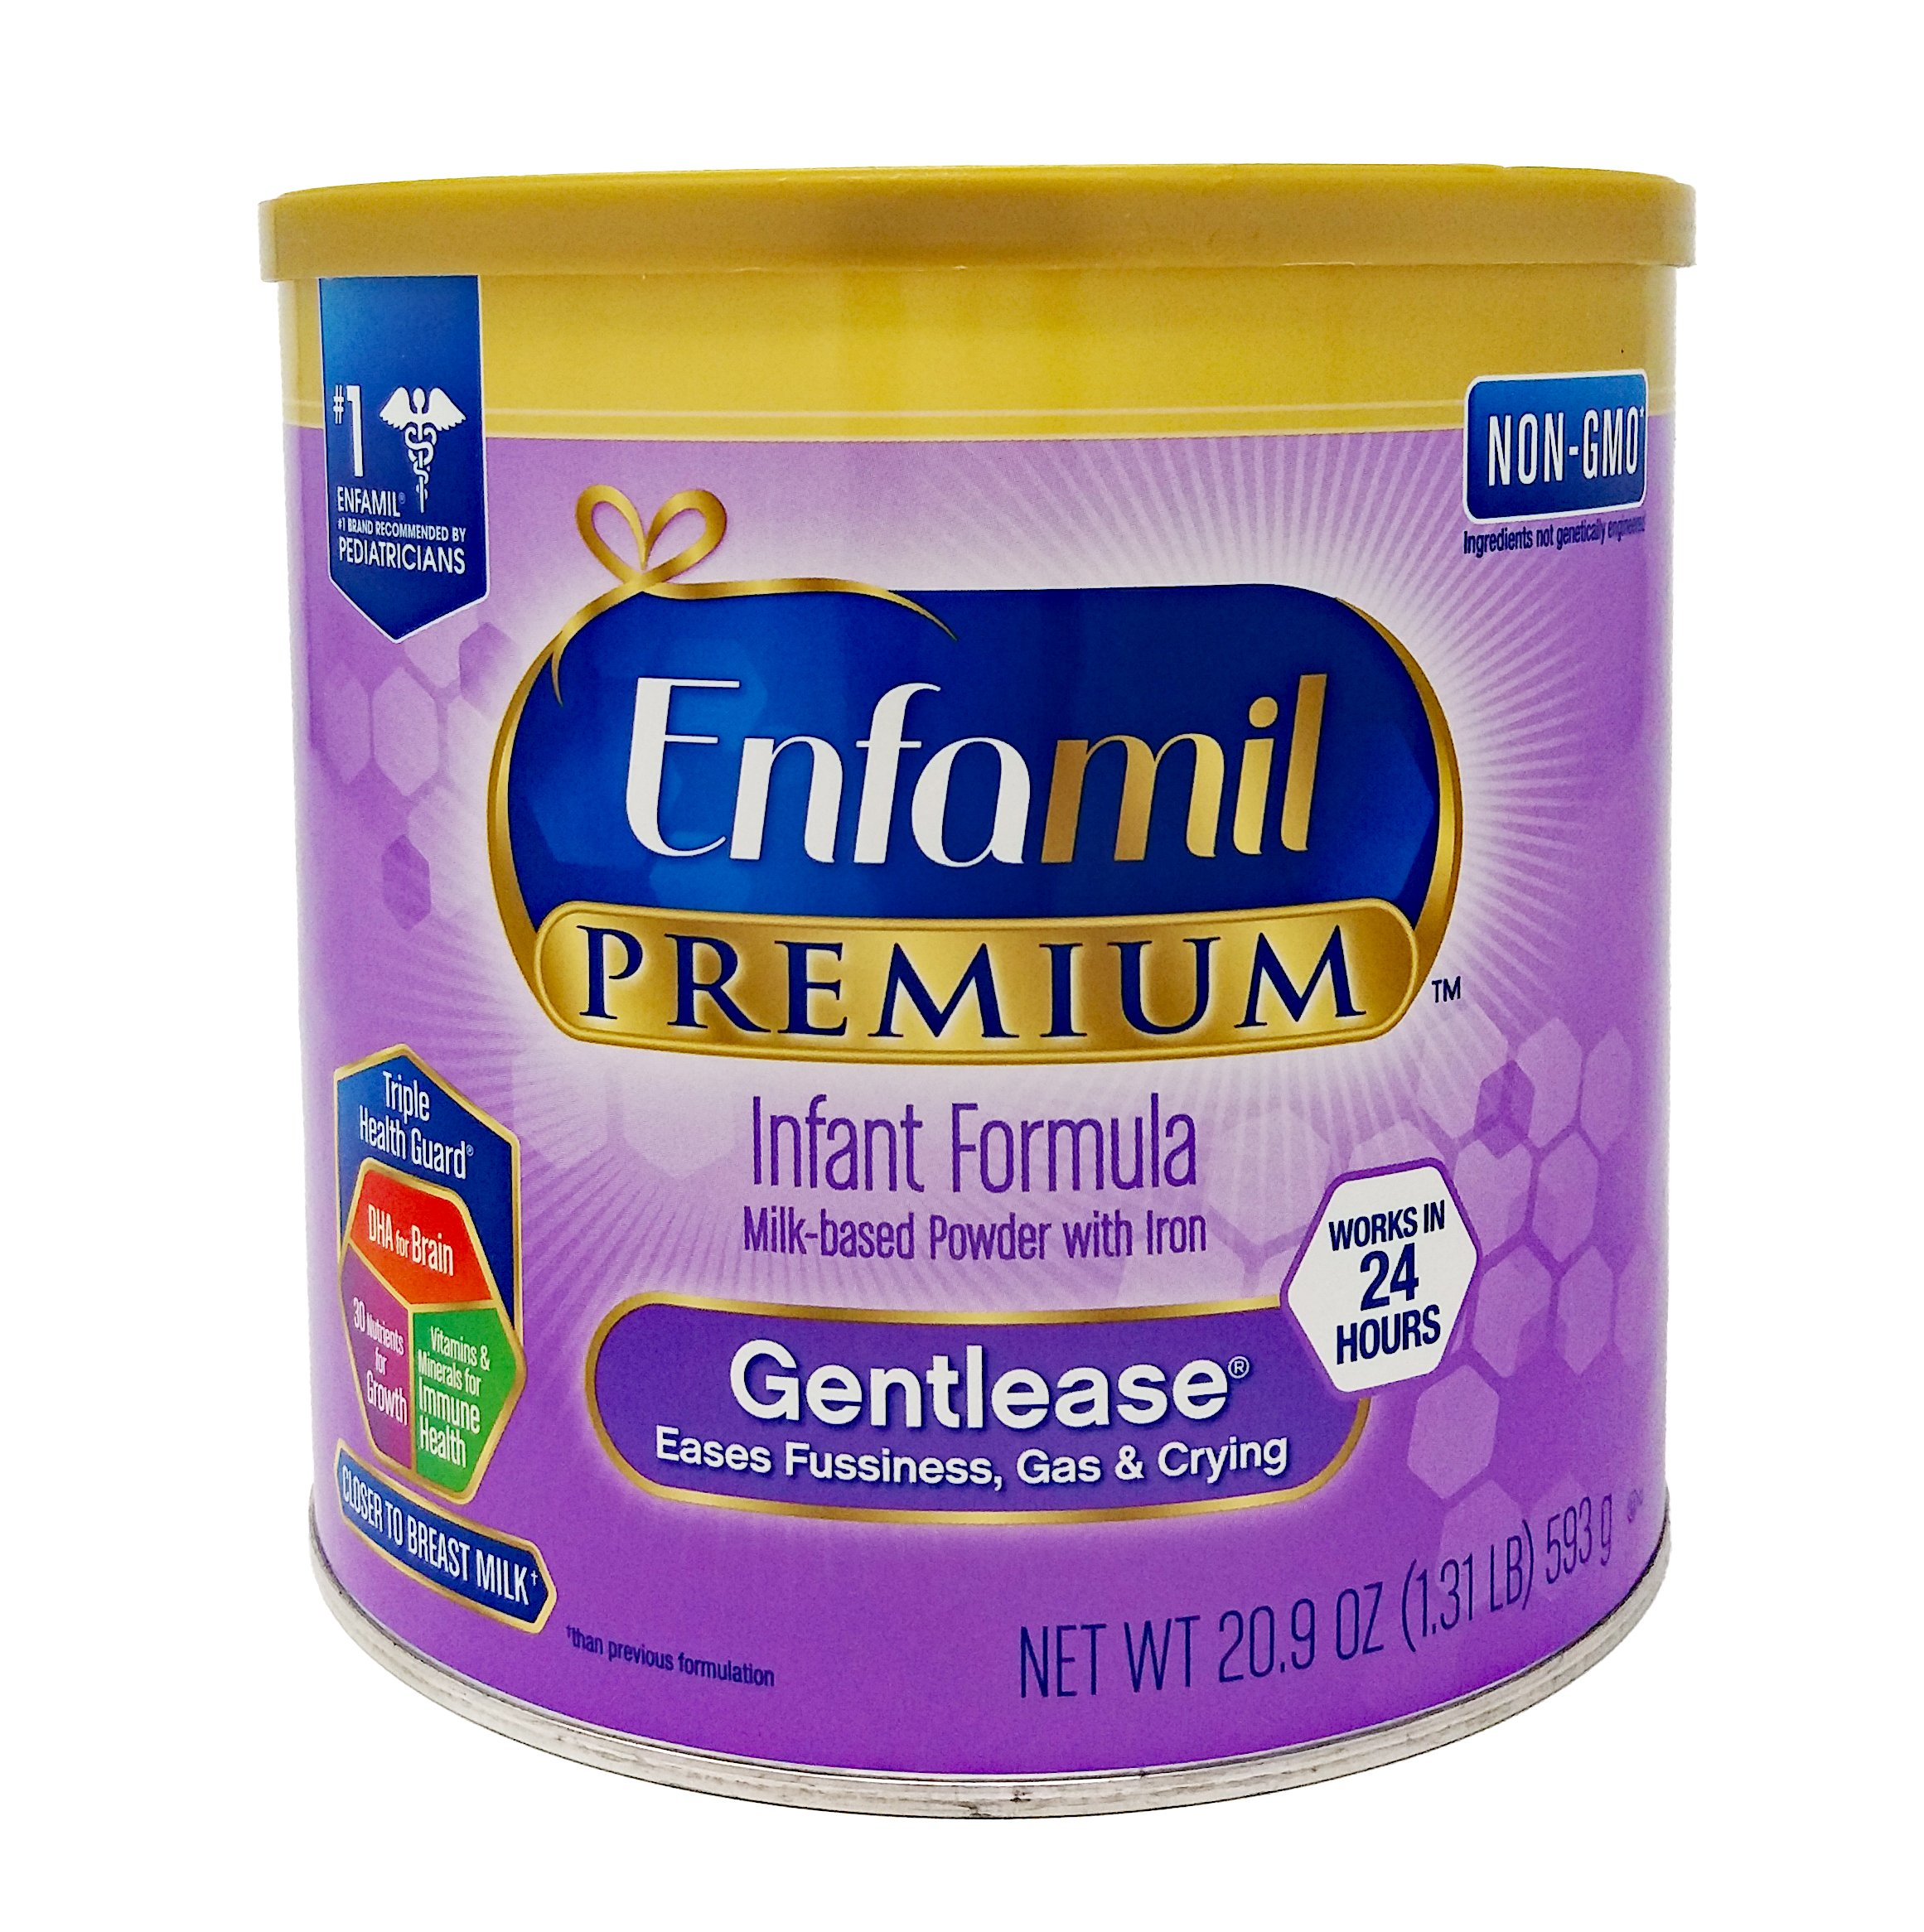 Enfamil PREMIUM Non-GMO Gentlease Infant Formula, Powder, 20.9 Ounce. Plus Free Bonus 1 Pack of Disposable Baby Bibs and 1 Baby Washcloth.